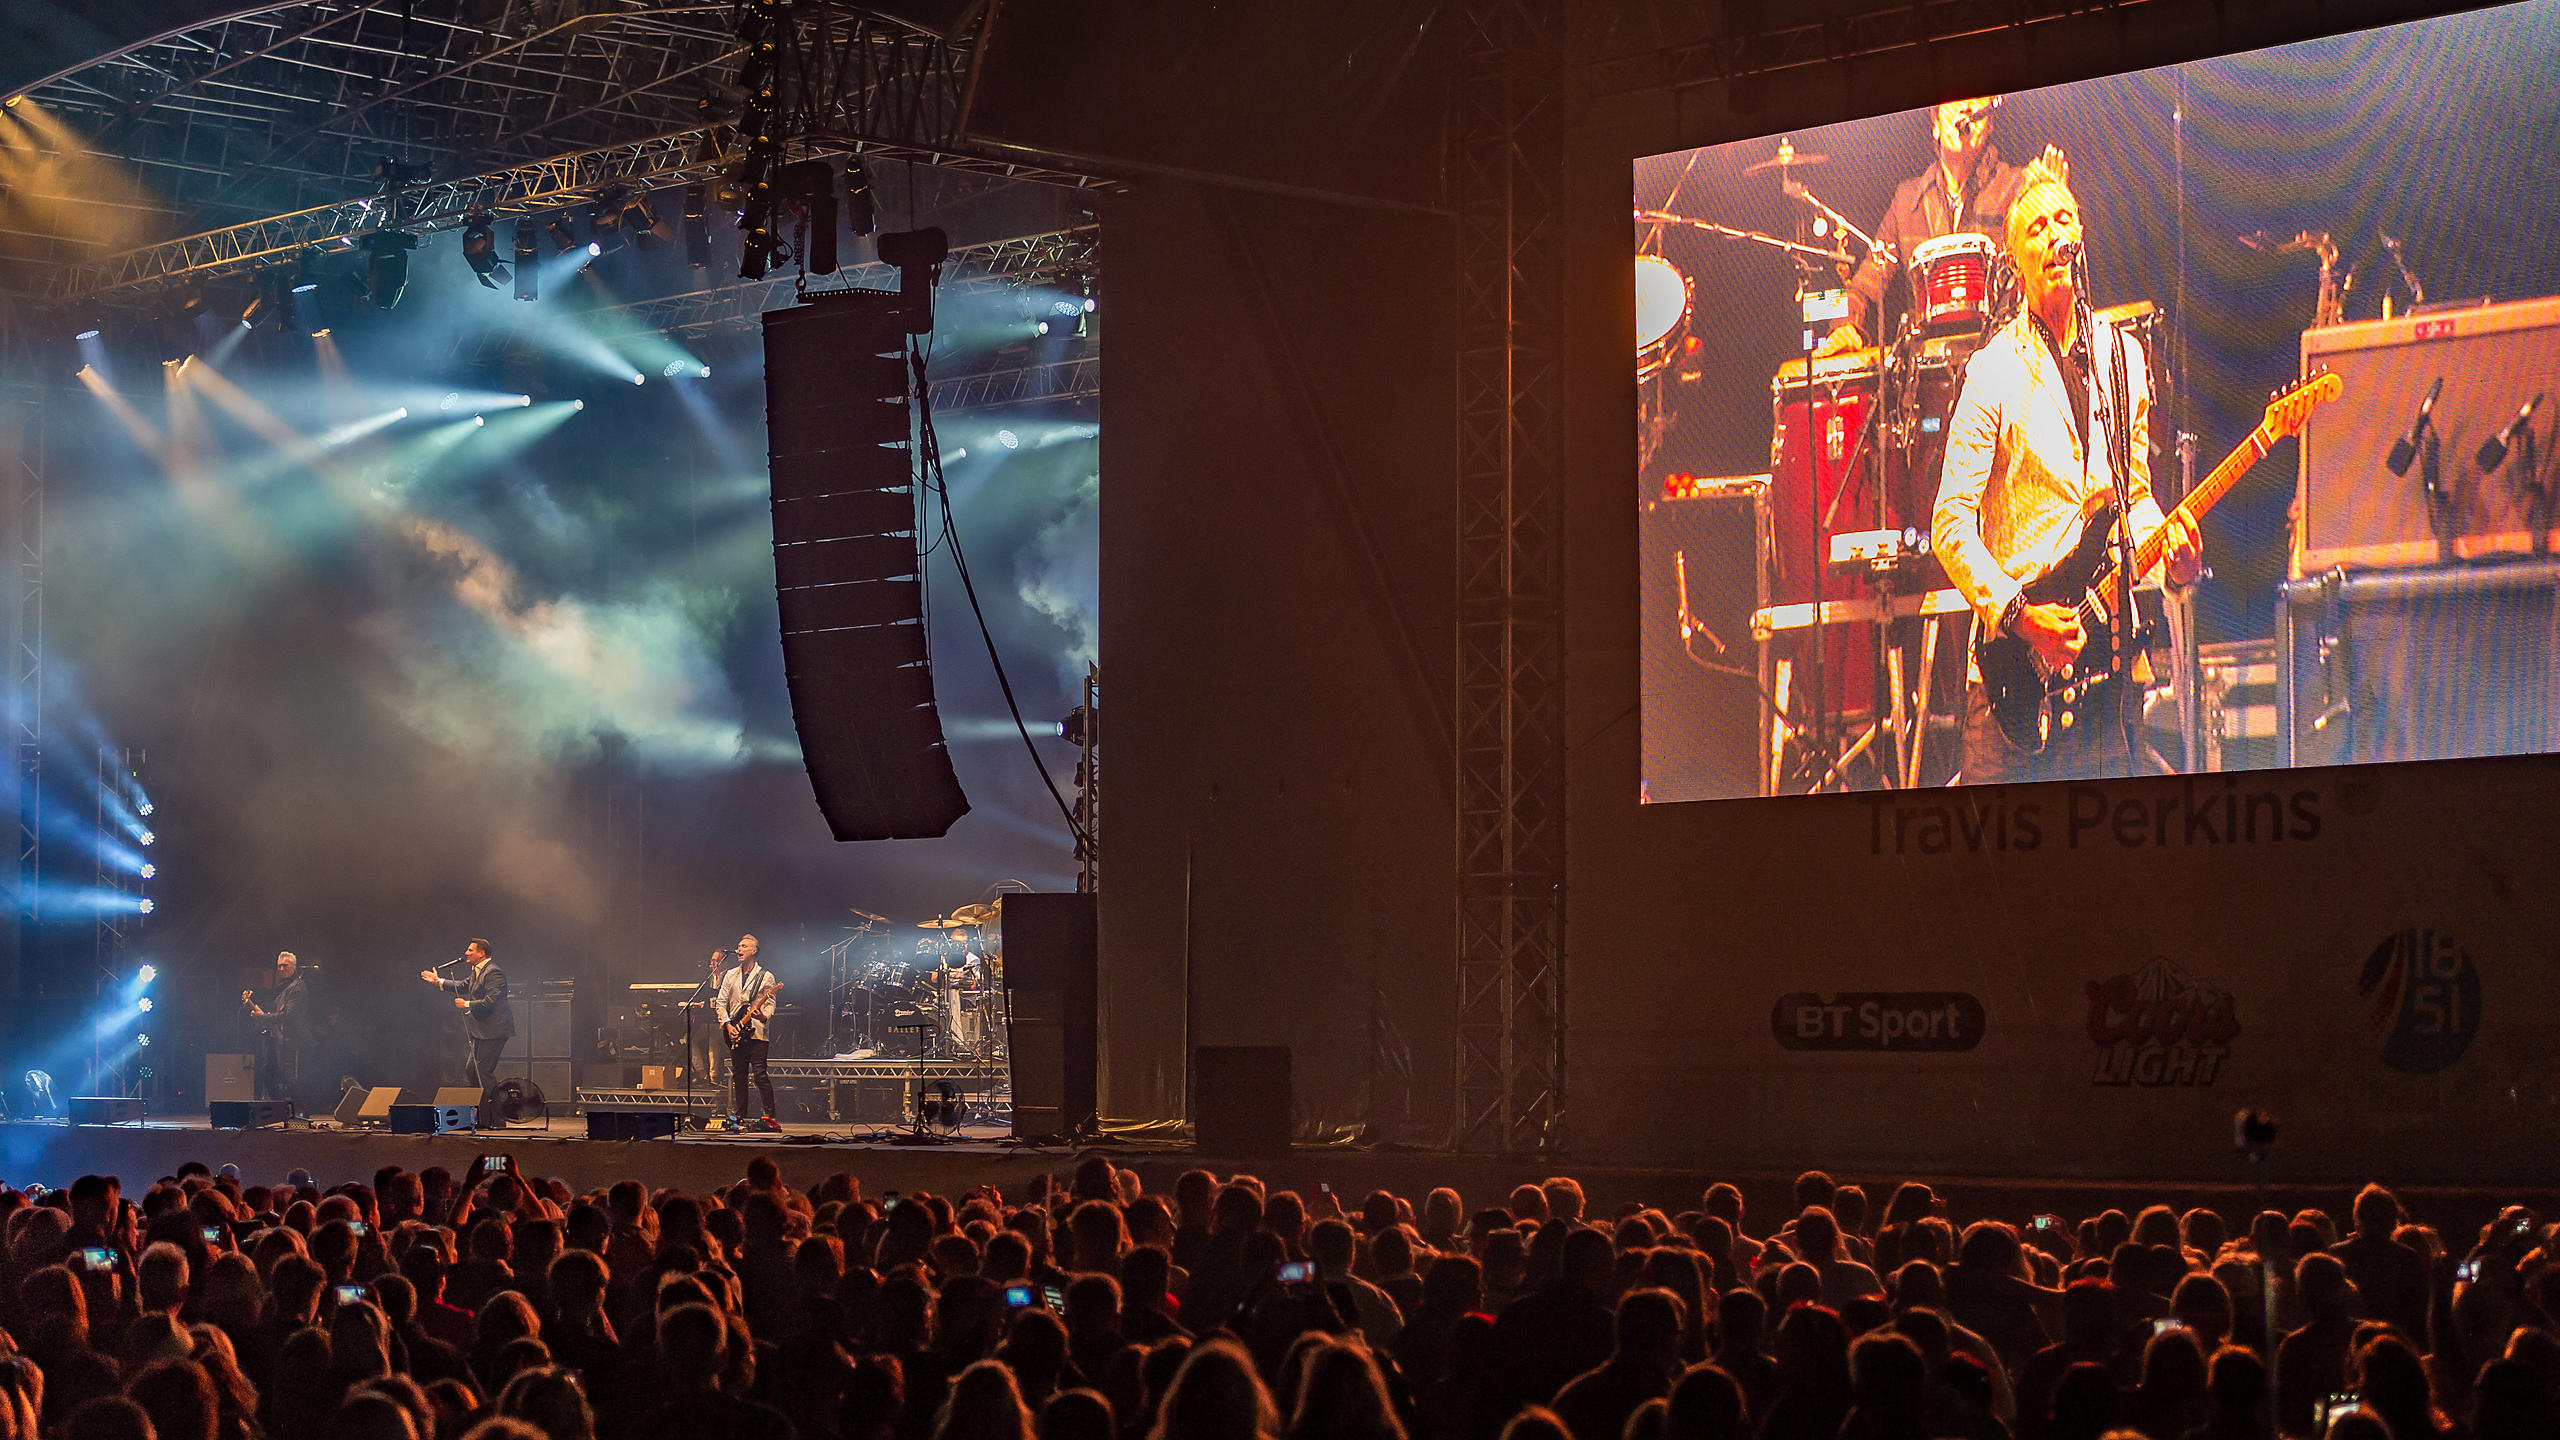 America's Cup Evening Concert, Portsmouth 2015